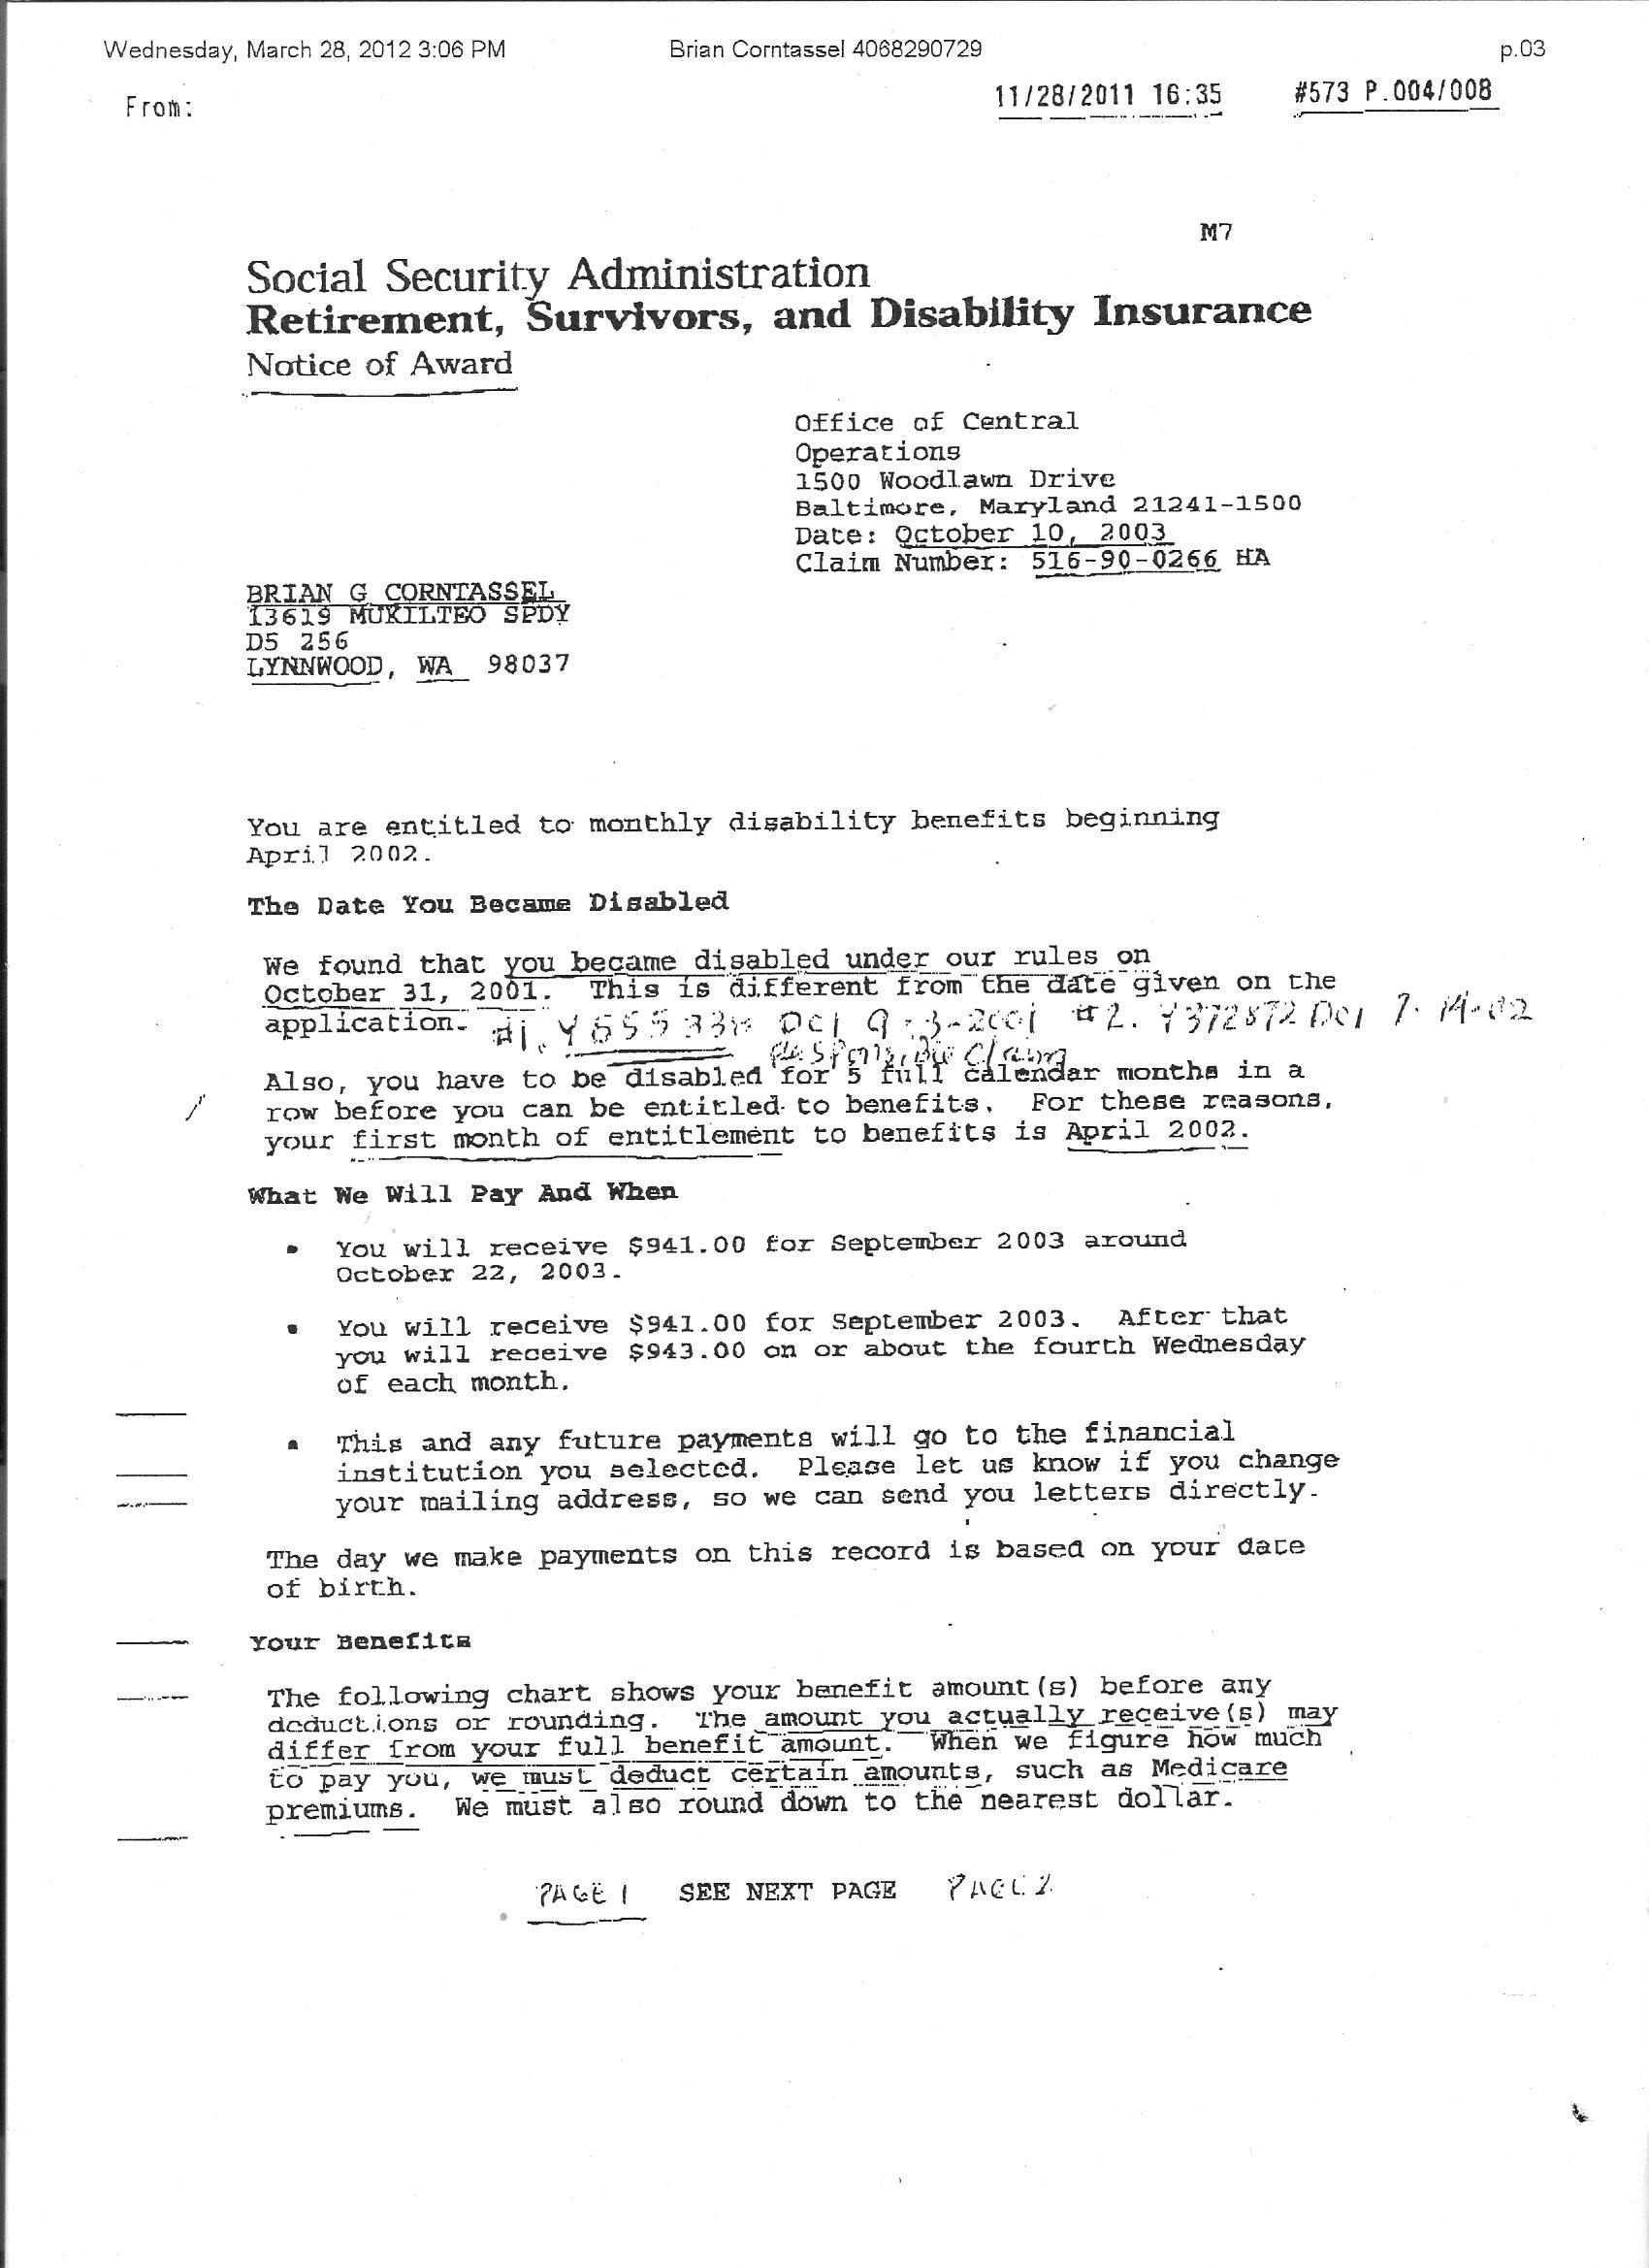 Social Security Award Letter Sample